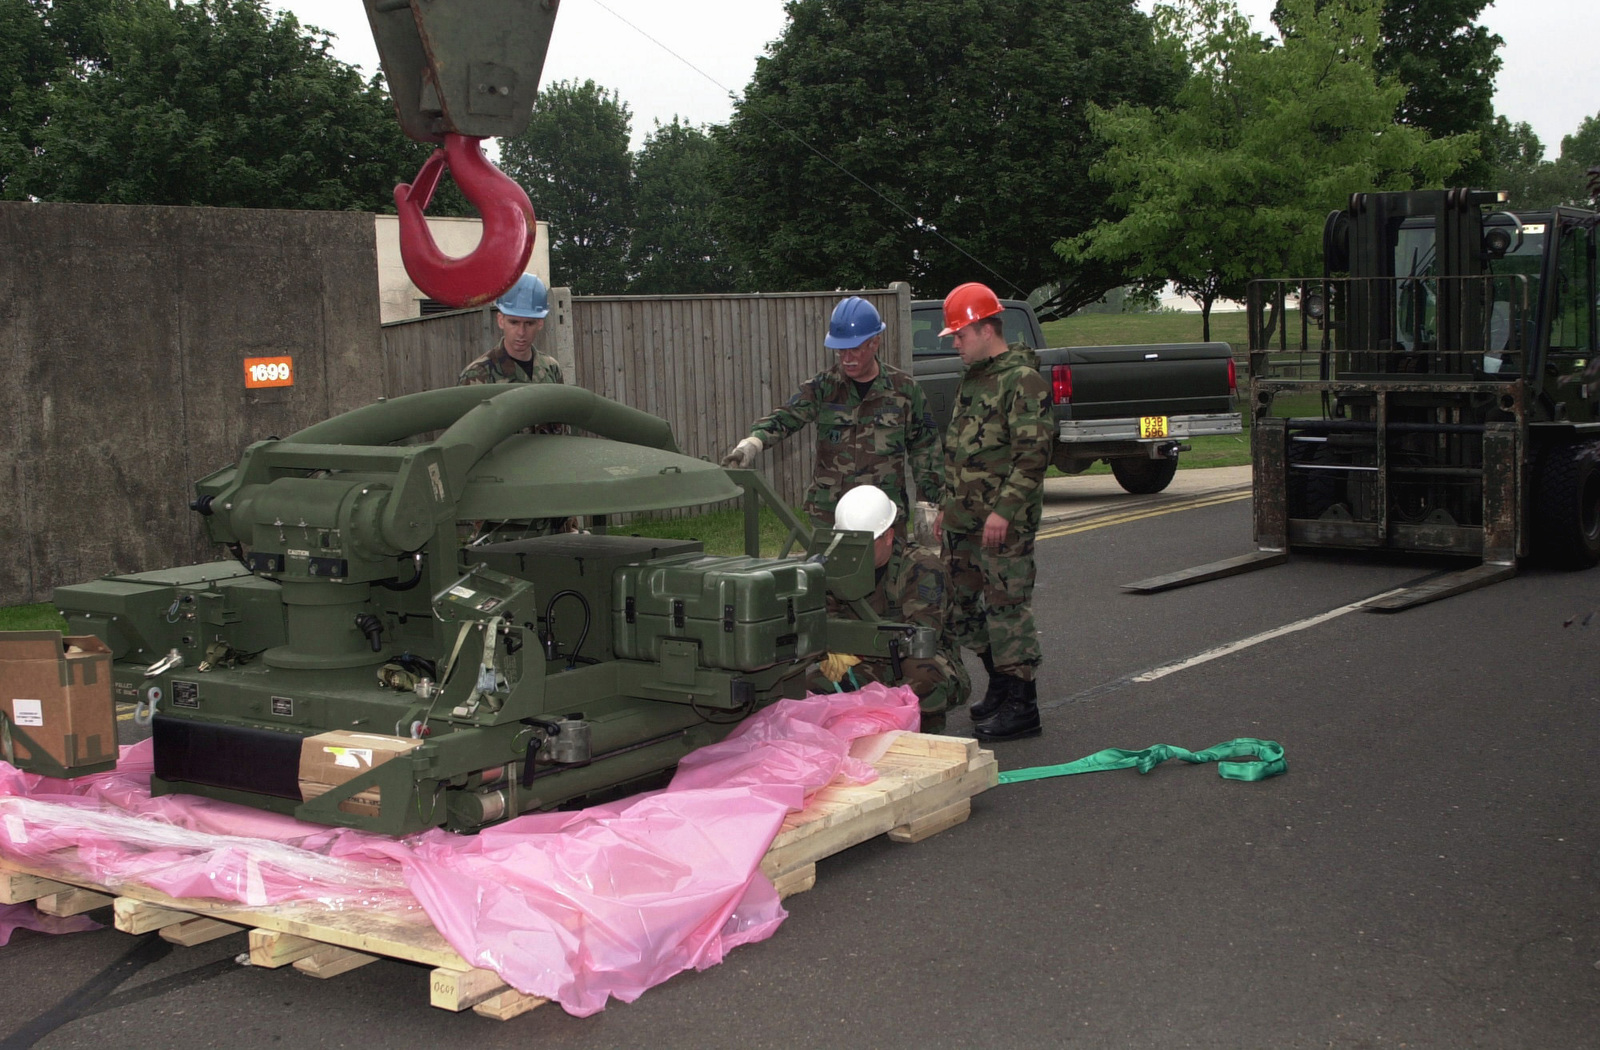 US Air Force (USAF) and Air National Guard (ANG) personnel assigned to the100th Civil Engineering Squadron (CES), review the Secure Mobile Anti-jam Reliable Tactical (SMART) Satellite Terminal equipment during initial installation at Royal Air Force (RAF) Mildenhall, United Kingdom (UK). Shown are USAF MASTER Sergeant (MSGT) Paxton (left), Louisiana (LA) ANG; MSGT Ron Morris, Ohio (OH) ANG; STAFF Sergeant (SSGT) Deacon White, 100th CES; and SSGT Andy Franks 100th CES